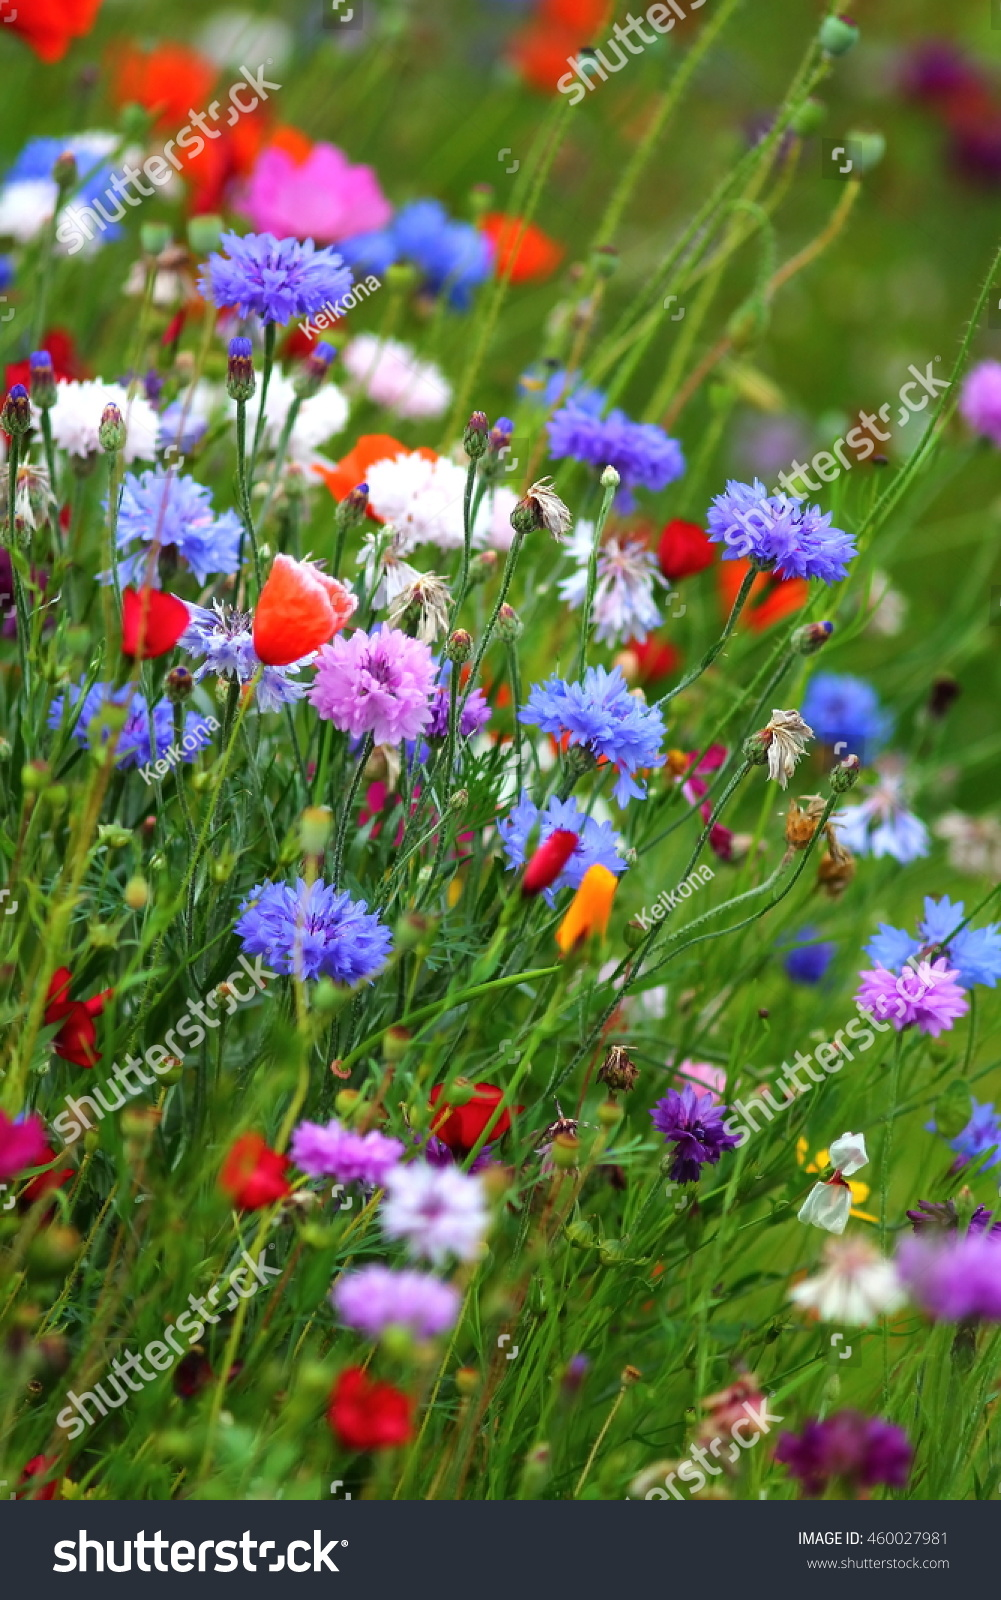 Edible White Purple And Blue Flowers On The Cornflower Meadow In